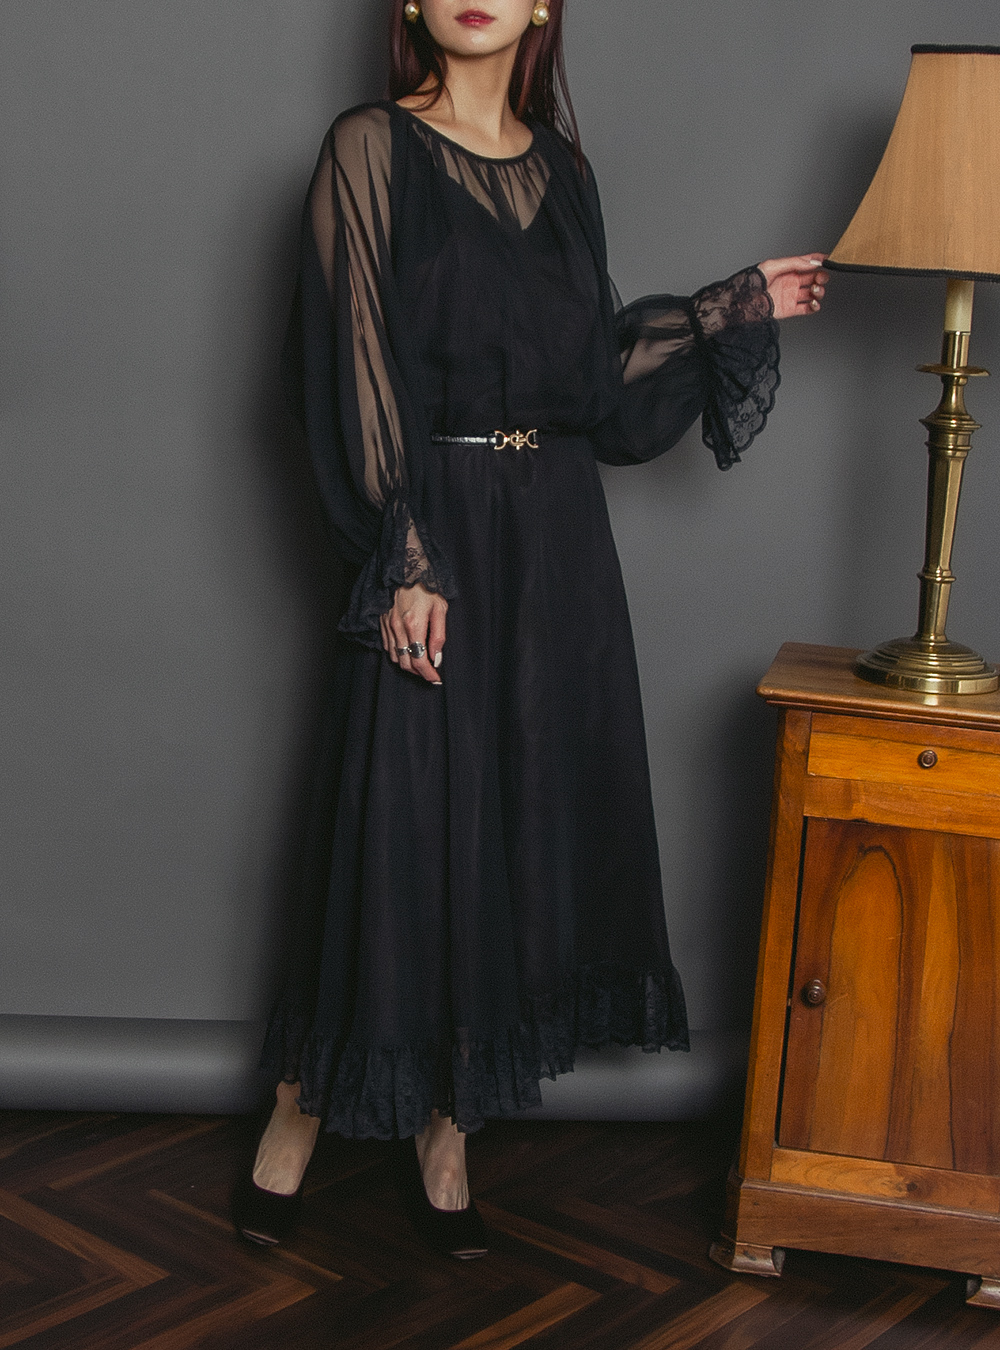 1970's Sheer Sleeve Black Dress